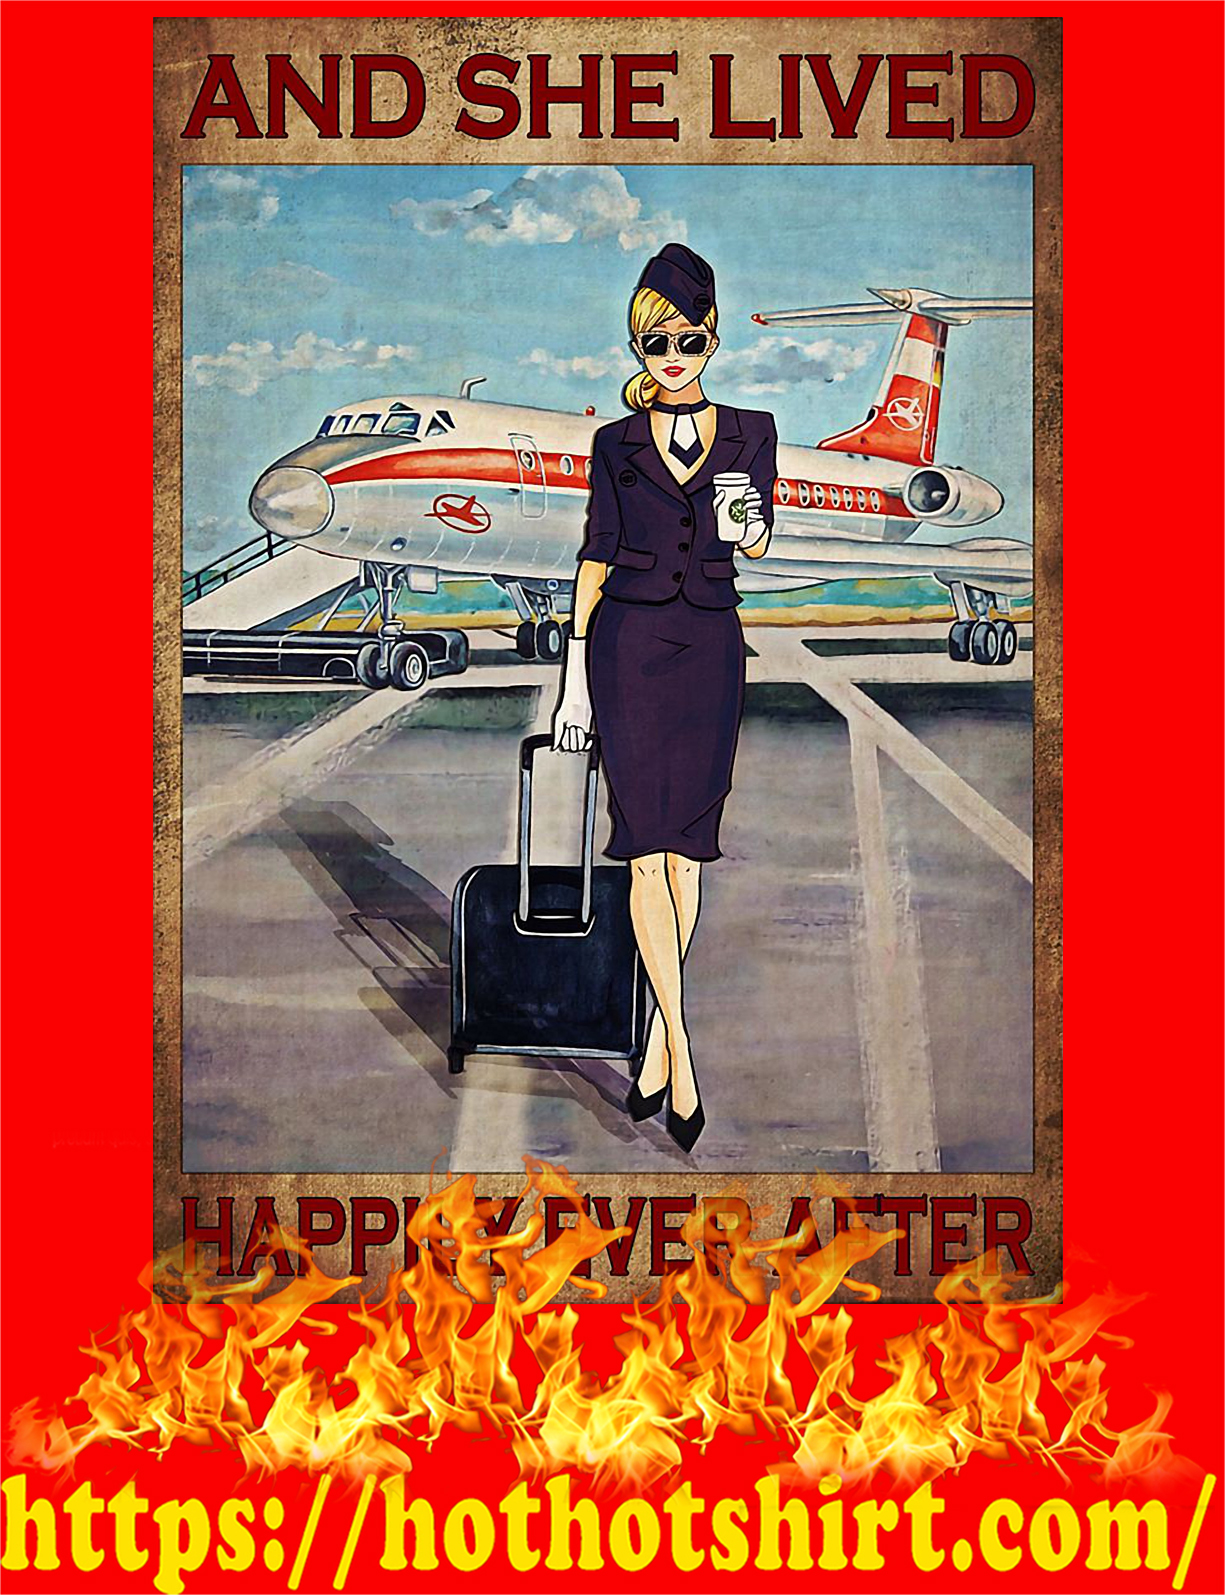 Flight Attendant And She Lived Happily Ever After Poster - style 4